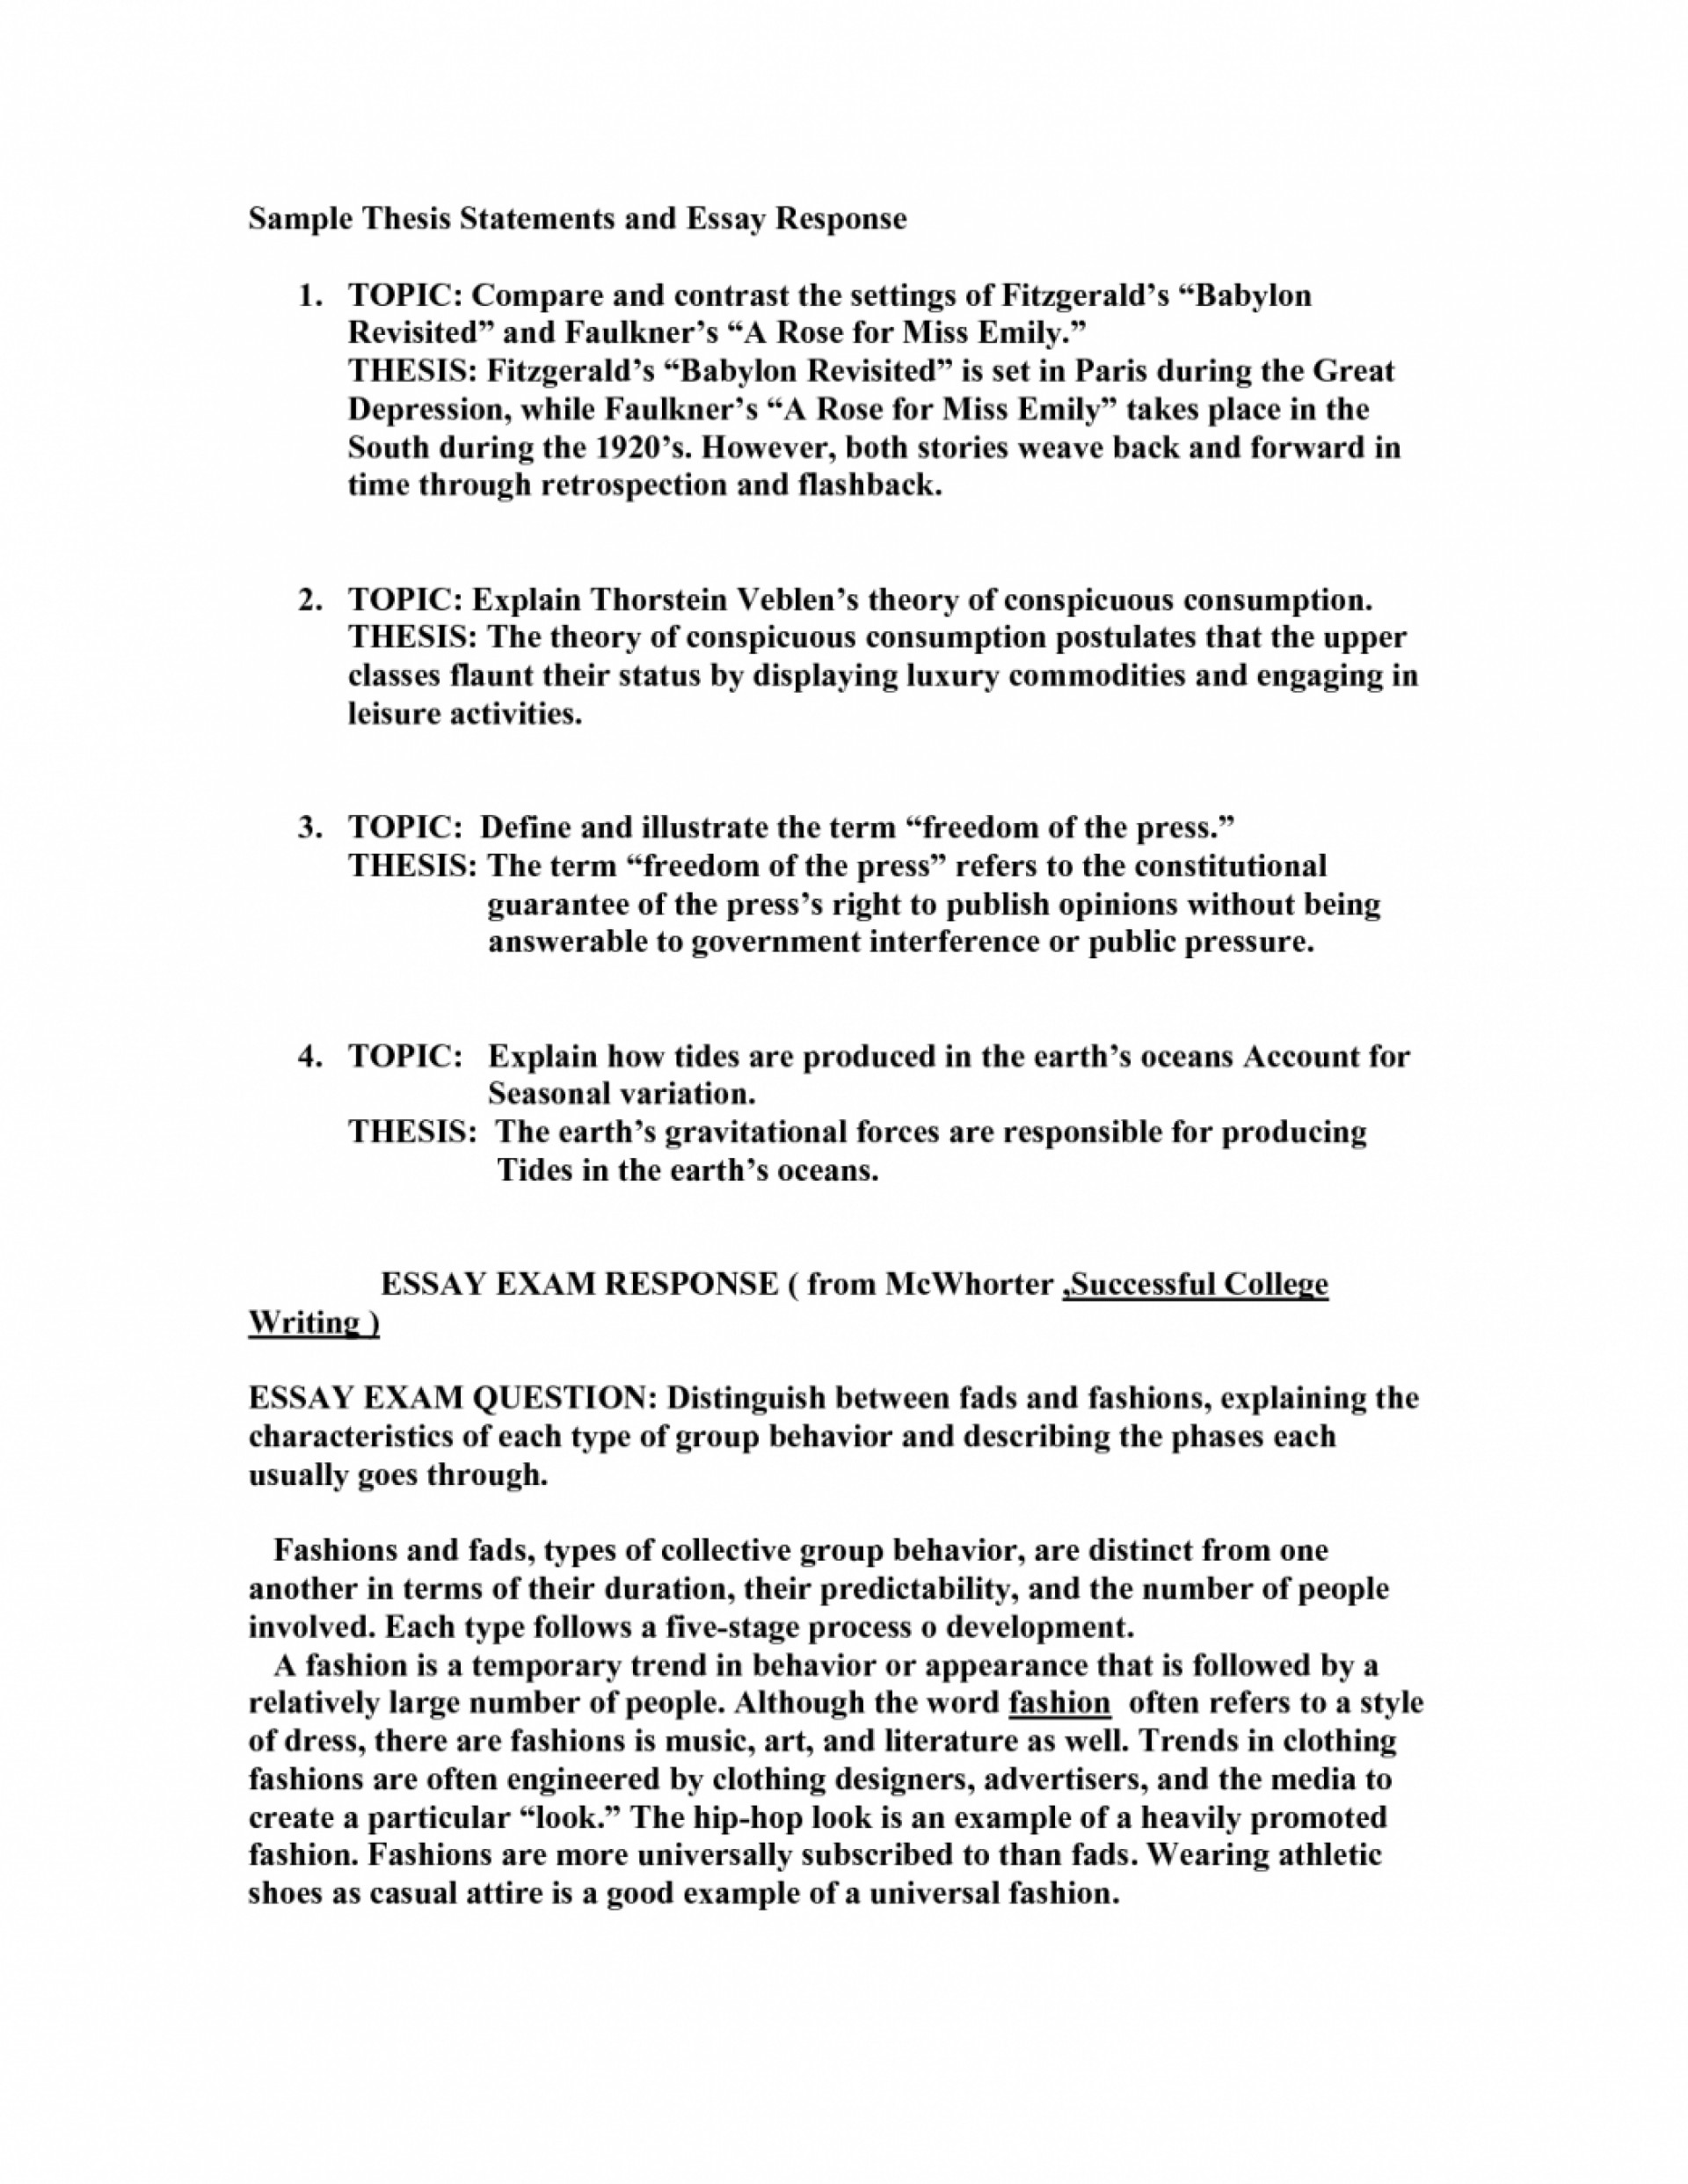 015 What Is Thesis Statement In An Essay Example Of How To Write For About Yourself 6na1p Argumentative Step By Expository High School Ppt Informative Analysis Pdf Fascinating A The Purpose 1920